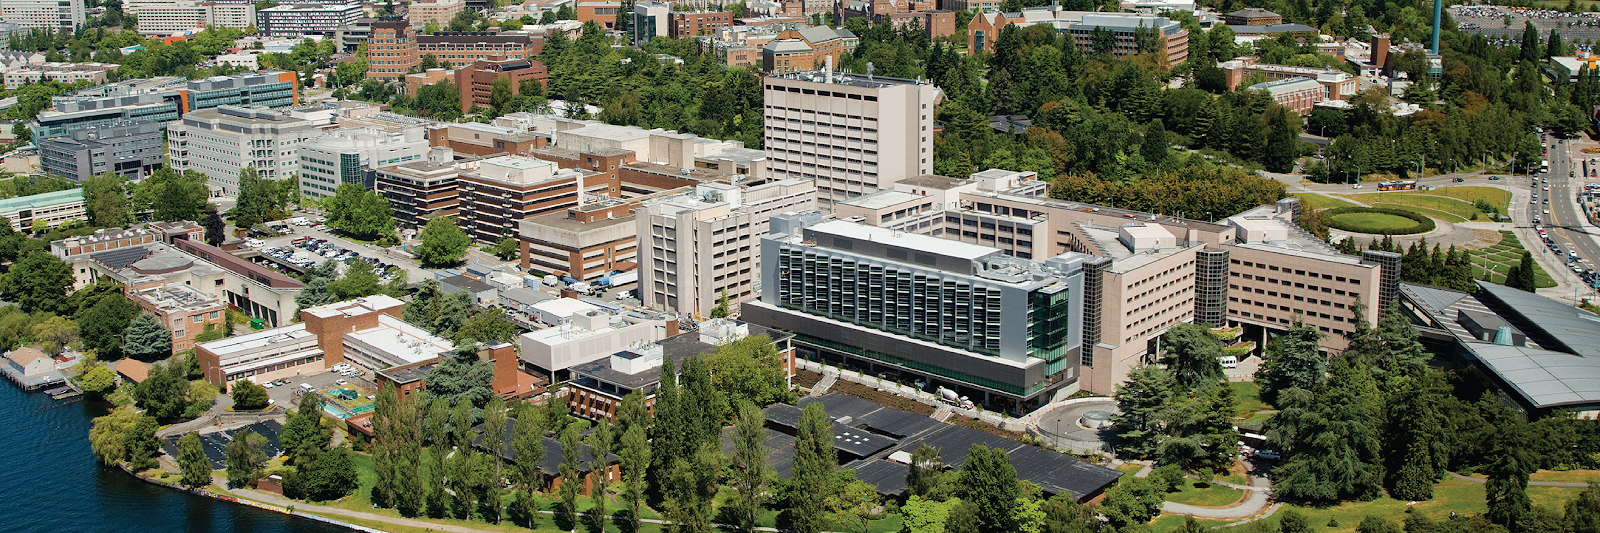 UW Medical Center photo from above.